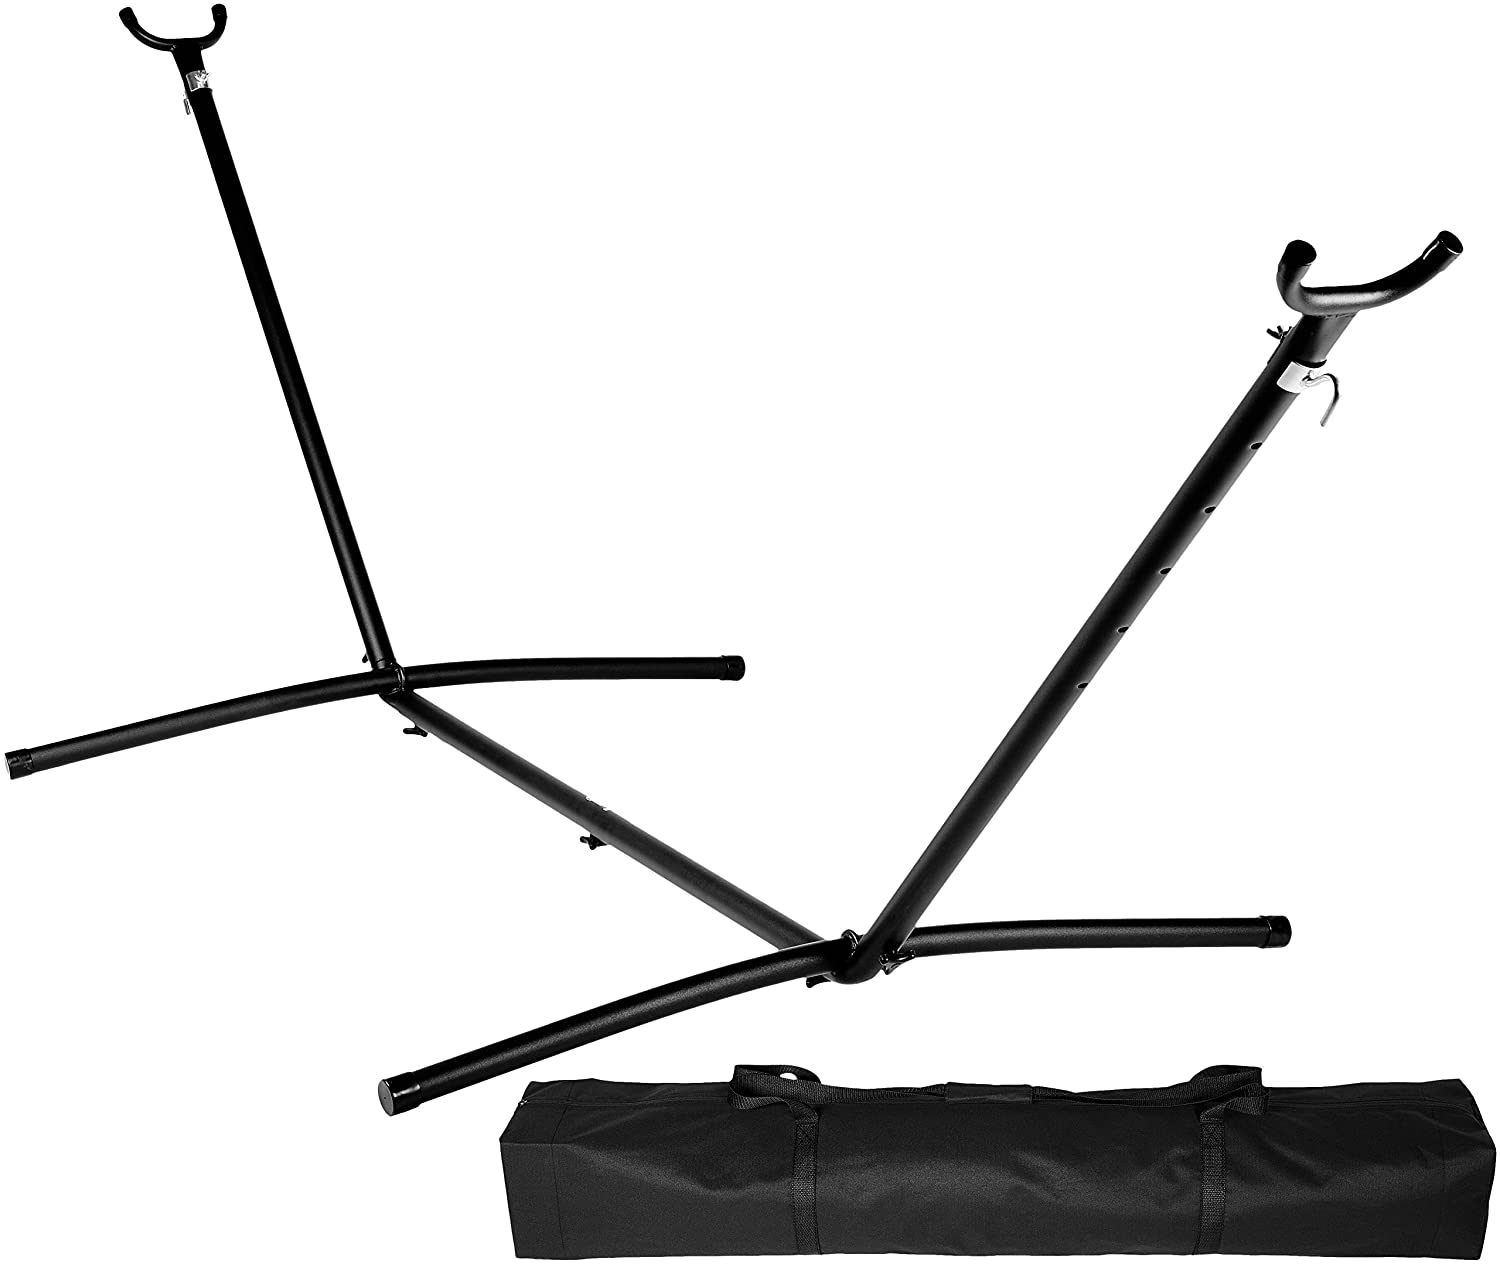 AmazonBasics Hammock Stand With Carrying Case, 9-Foot